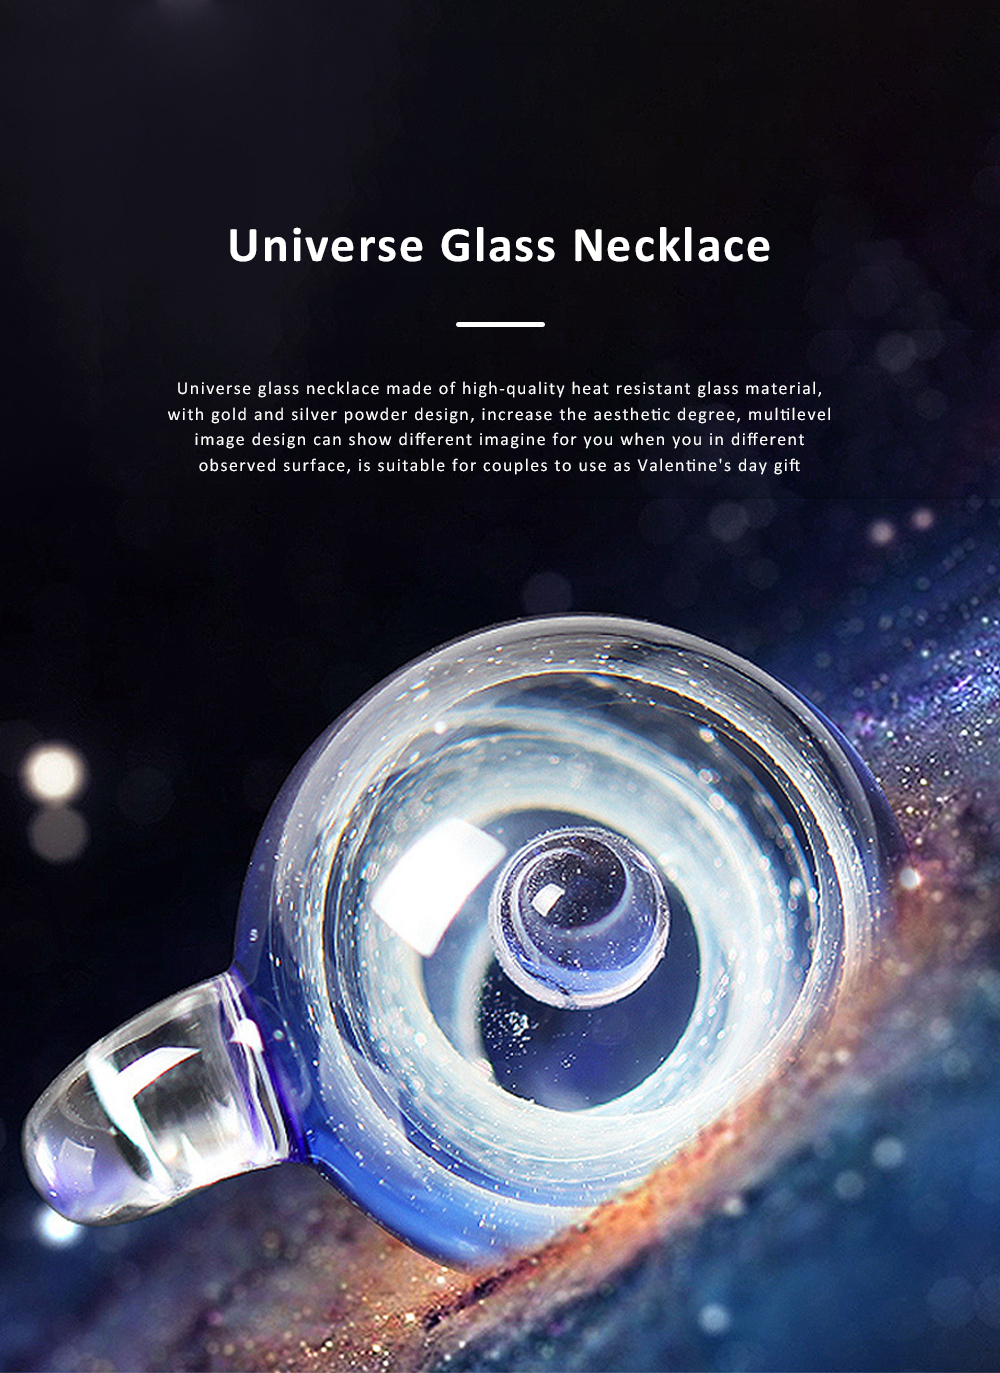 Cosmic Starry Glass Ball Necklace for Couple Gold and Silver Powder Multilevel Image Heat Resistant Natural Glass Decoration Valentine's Day Gift 0